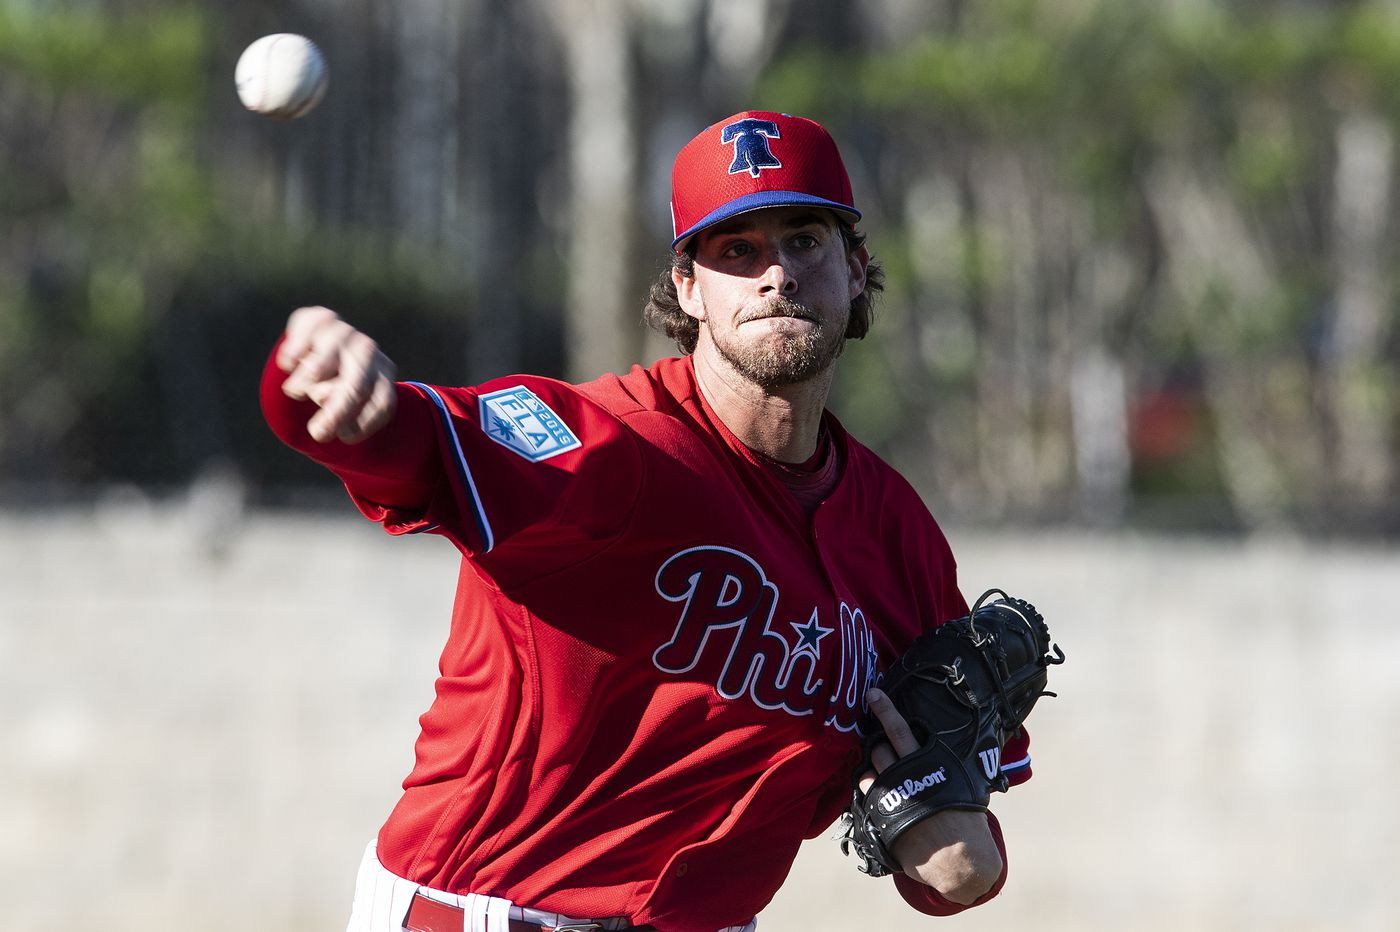 Aaron Nola's contract extension with Phillies could be sign of new MLB free-agency patterns | Scott Lauber